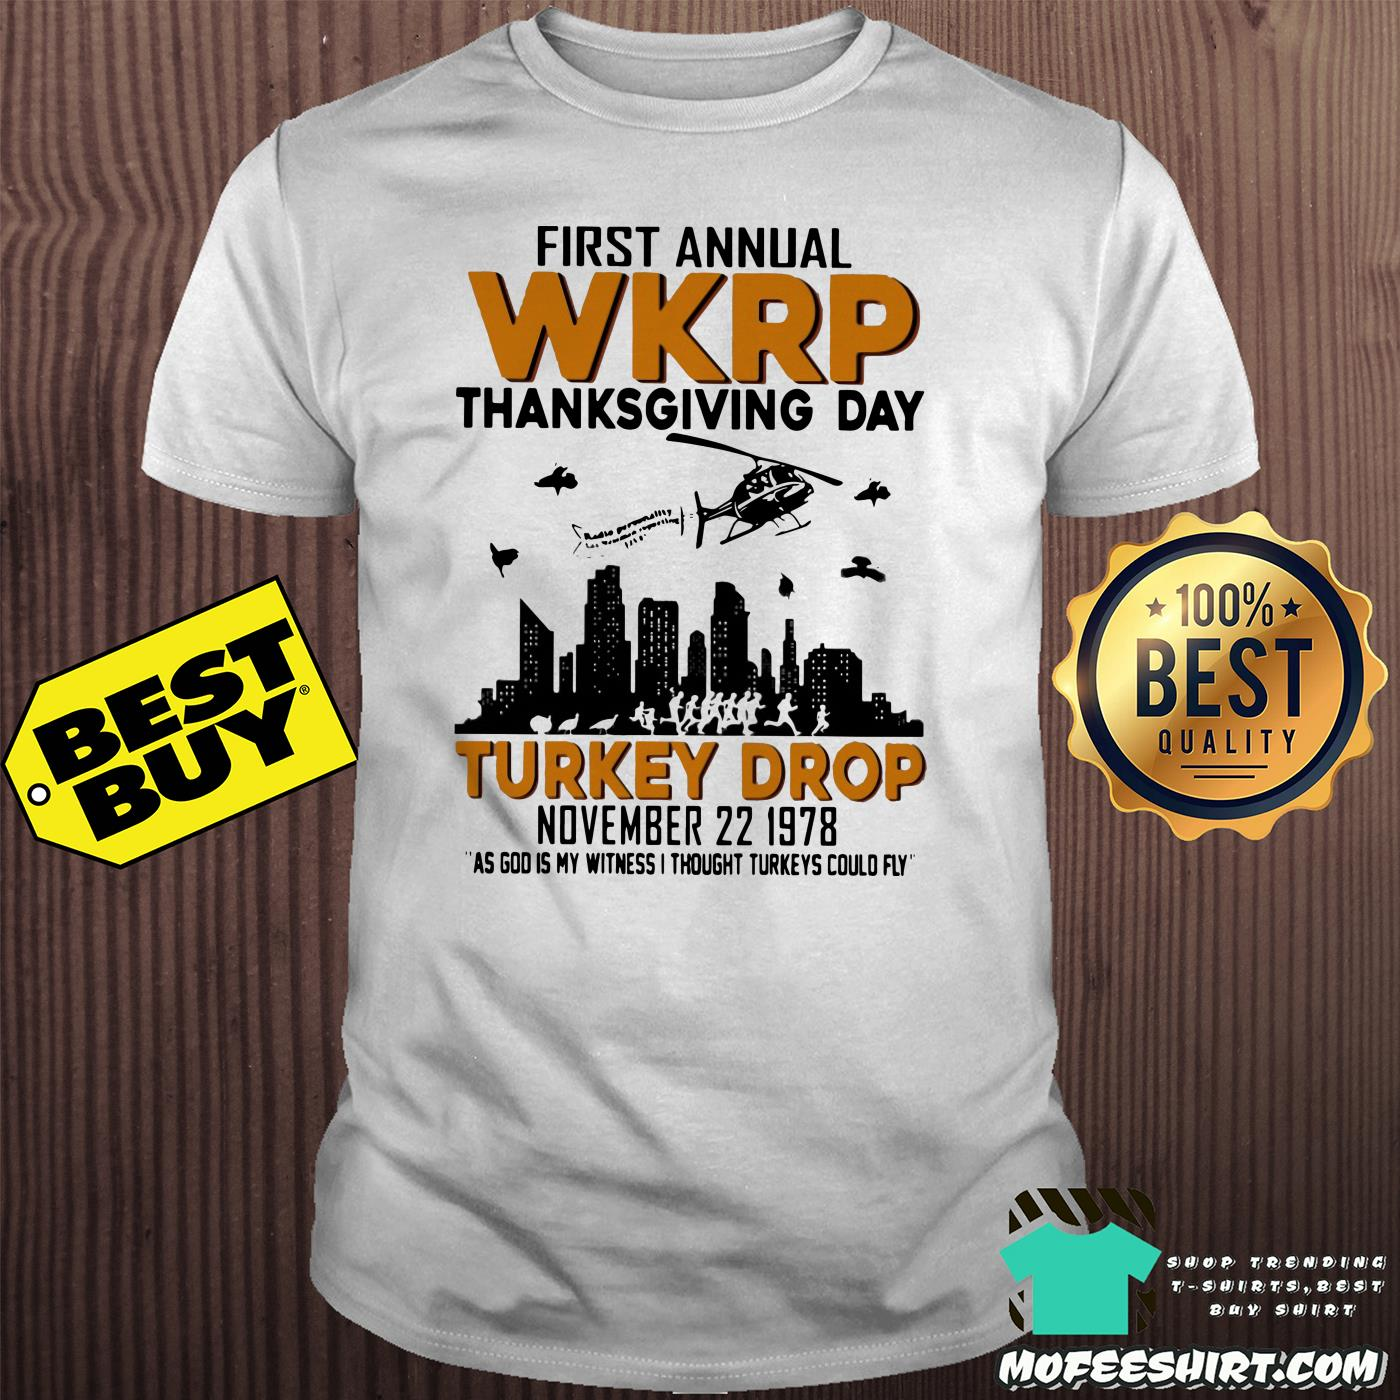 first annual wkrp thanksgiving day turkey drop november 22 1978 shirt - First Annual Wkrp Thanksgiving Day Turkey Drop November 22 1978 Shirt